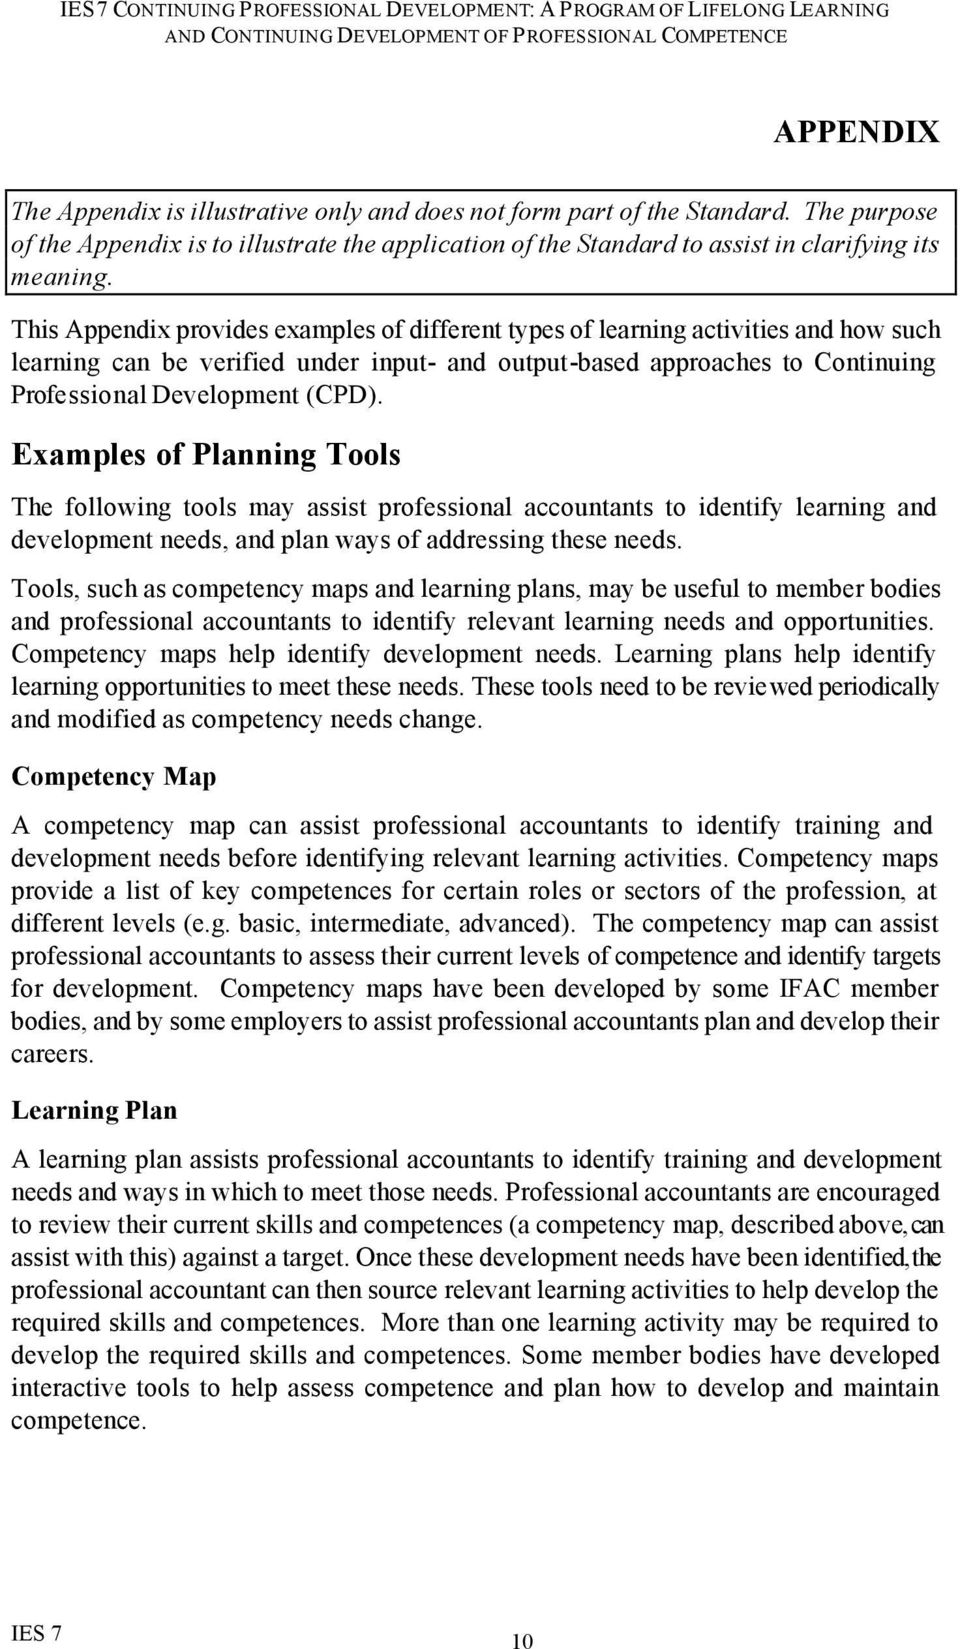 Examples of Planning Tools The following tools may assist professional accountants to identify learning and development needs, and plan ways of addressing these needs.